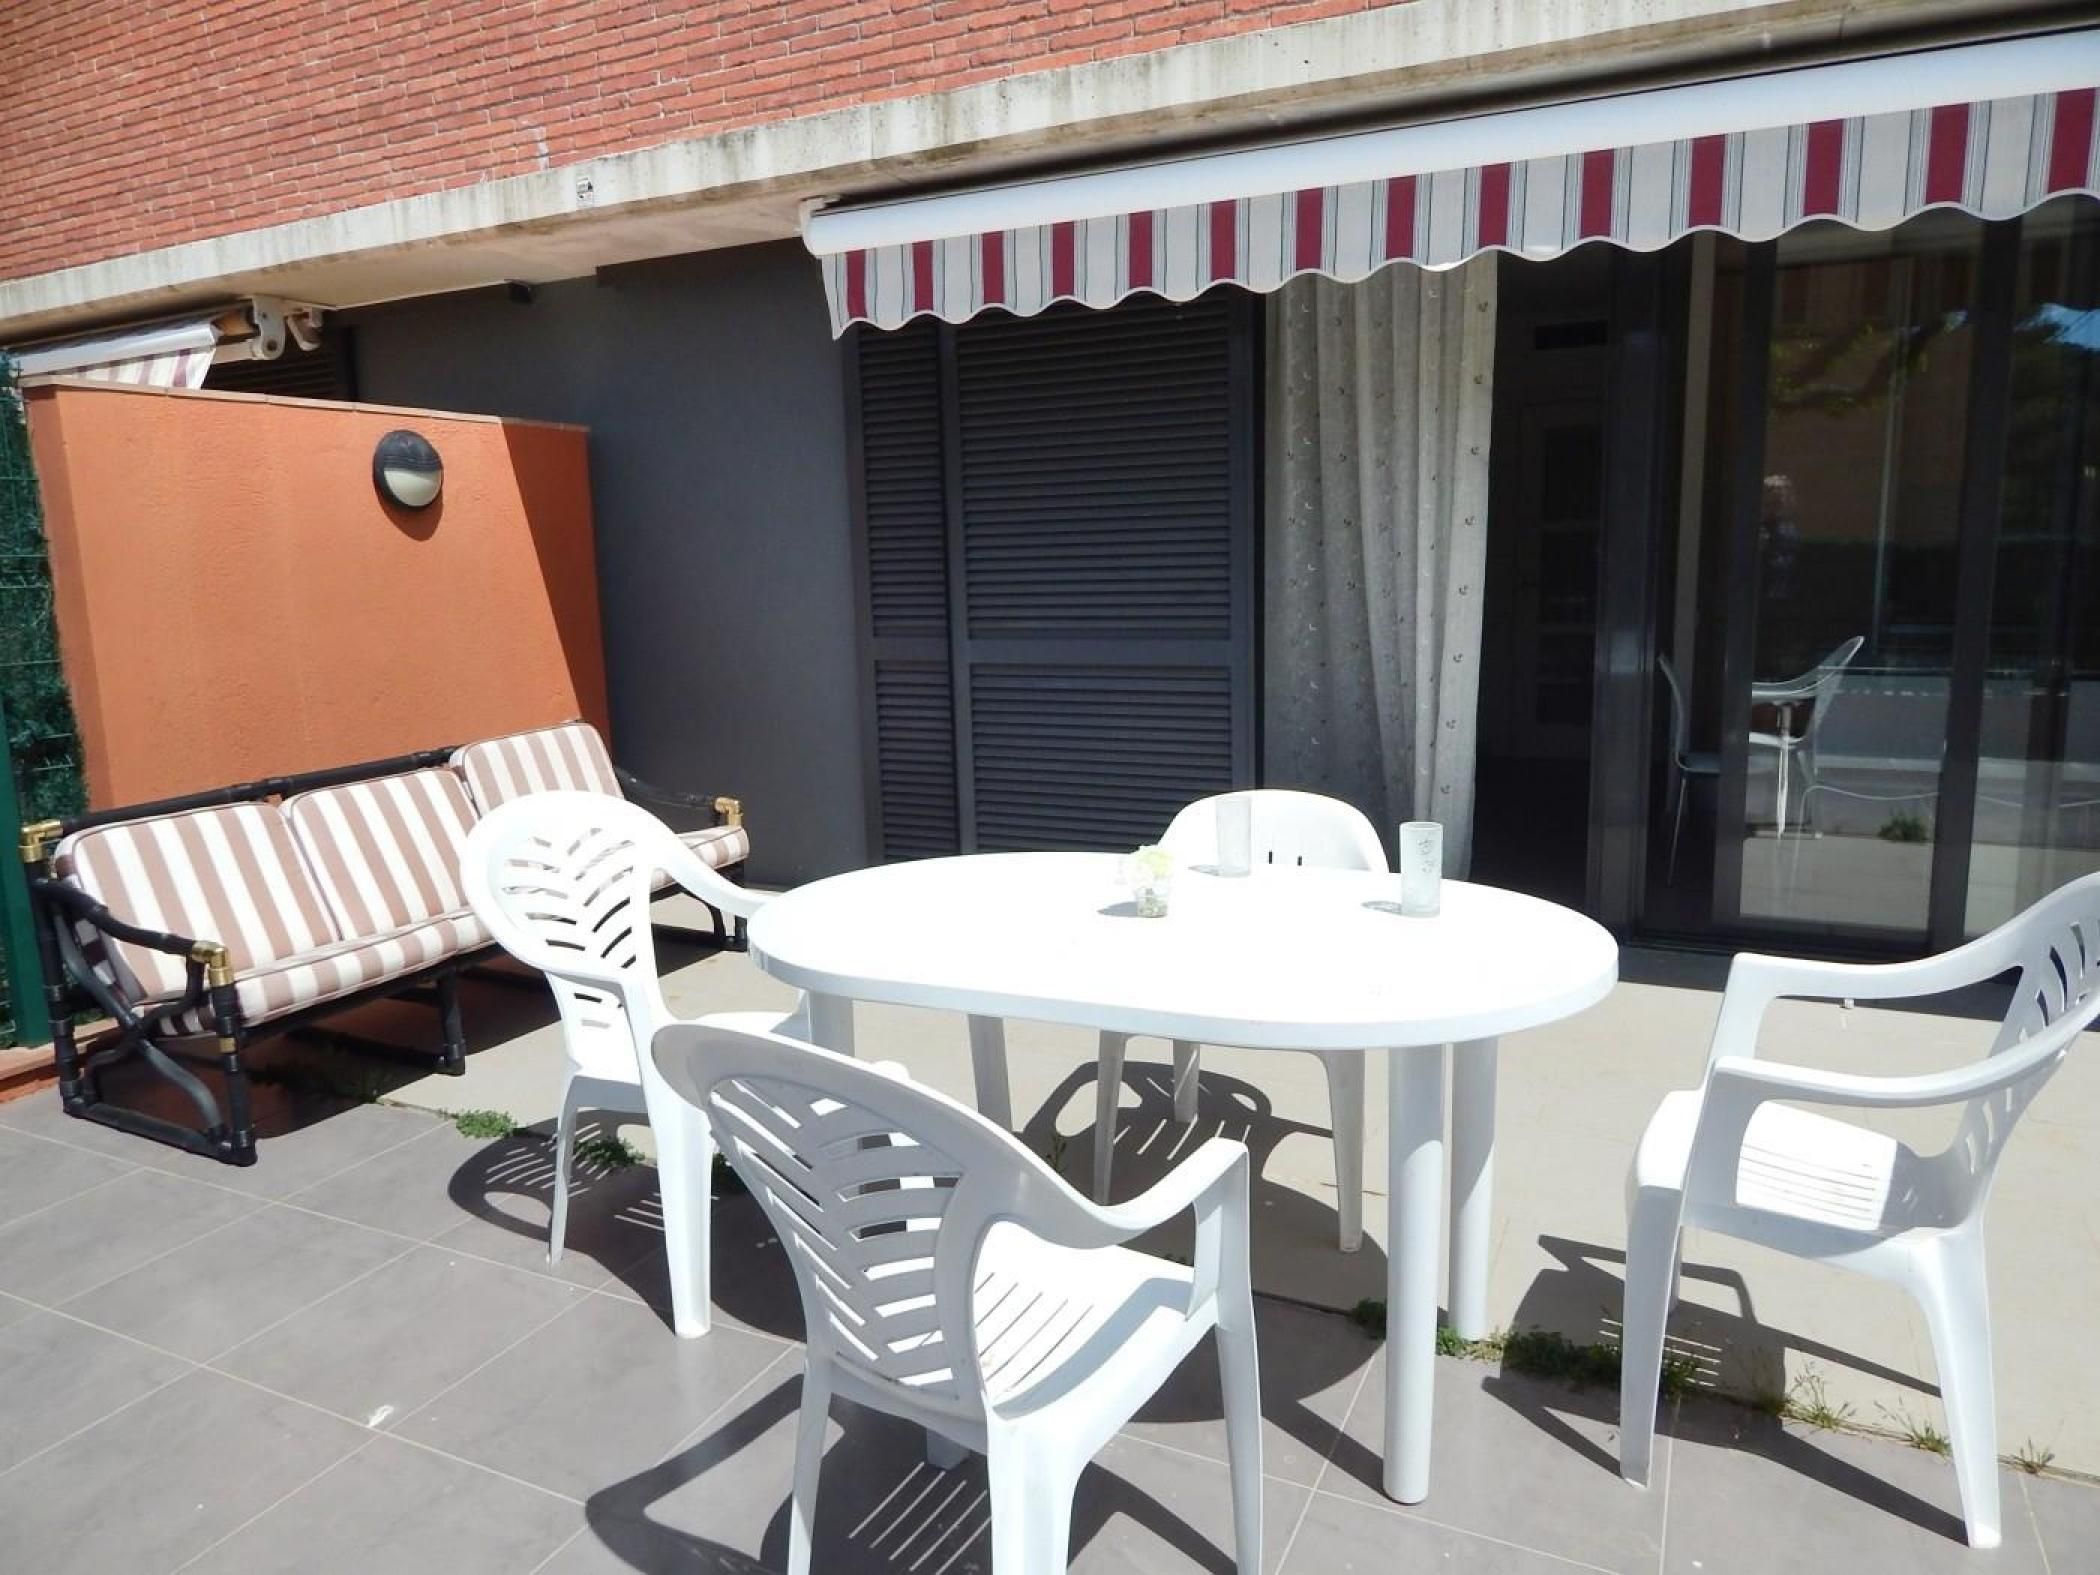 Lloguer Apartament a Platja d'Aro - Ground floor in front of the sea Ridaura BX4 - 18